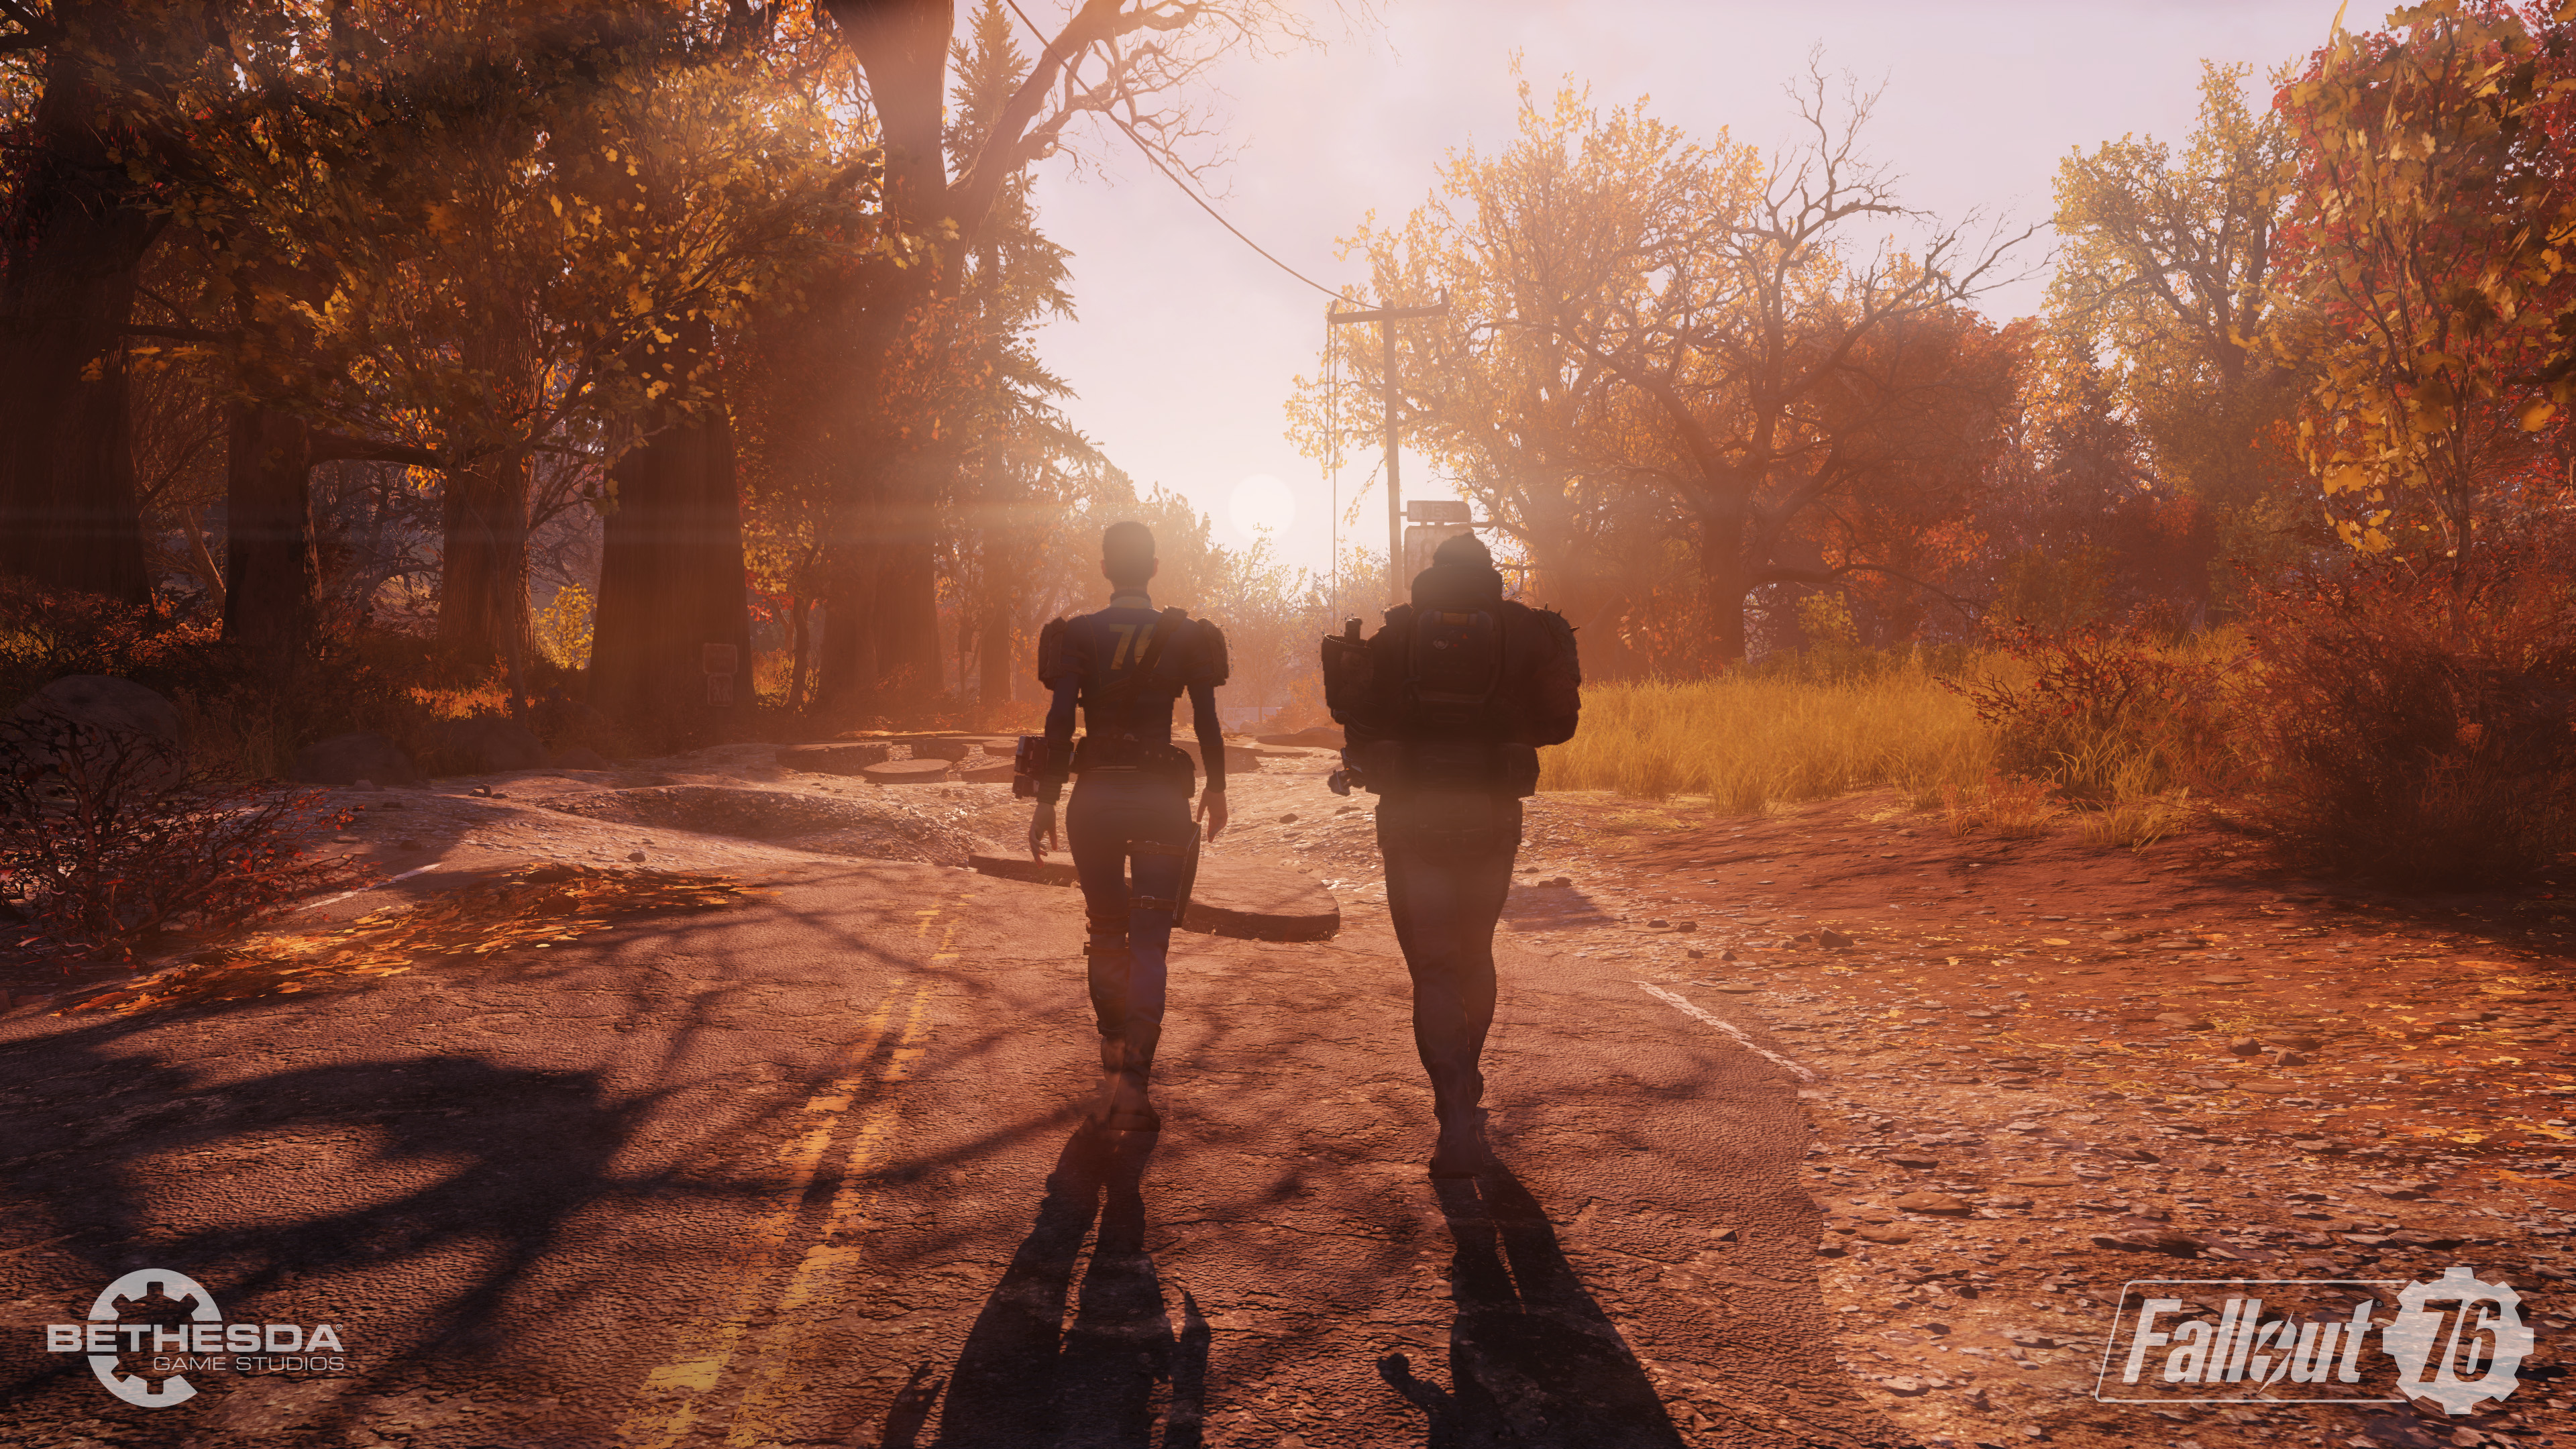 Fallout 76 beta - two wanderers